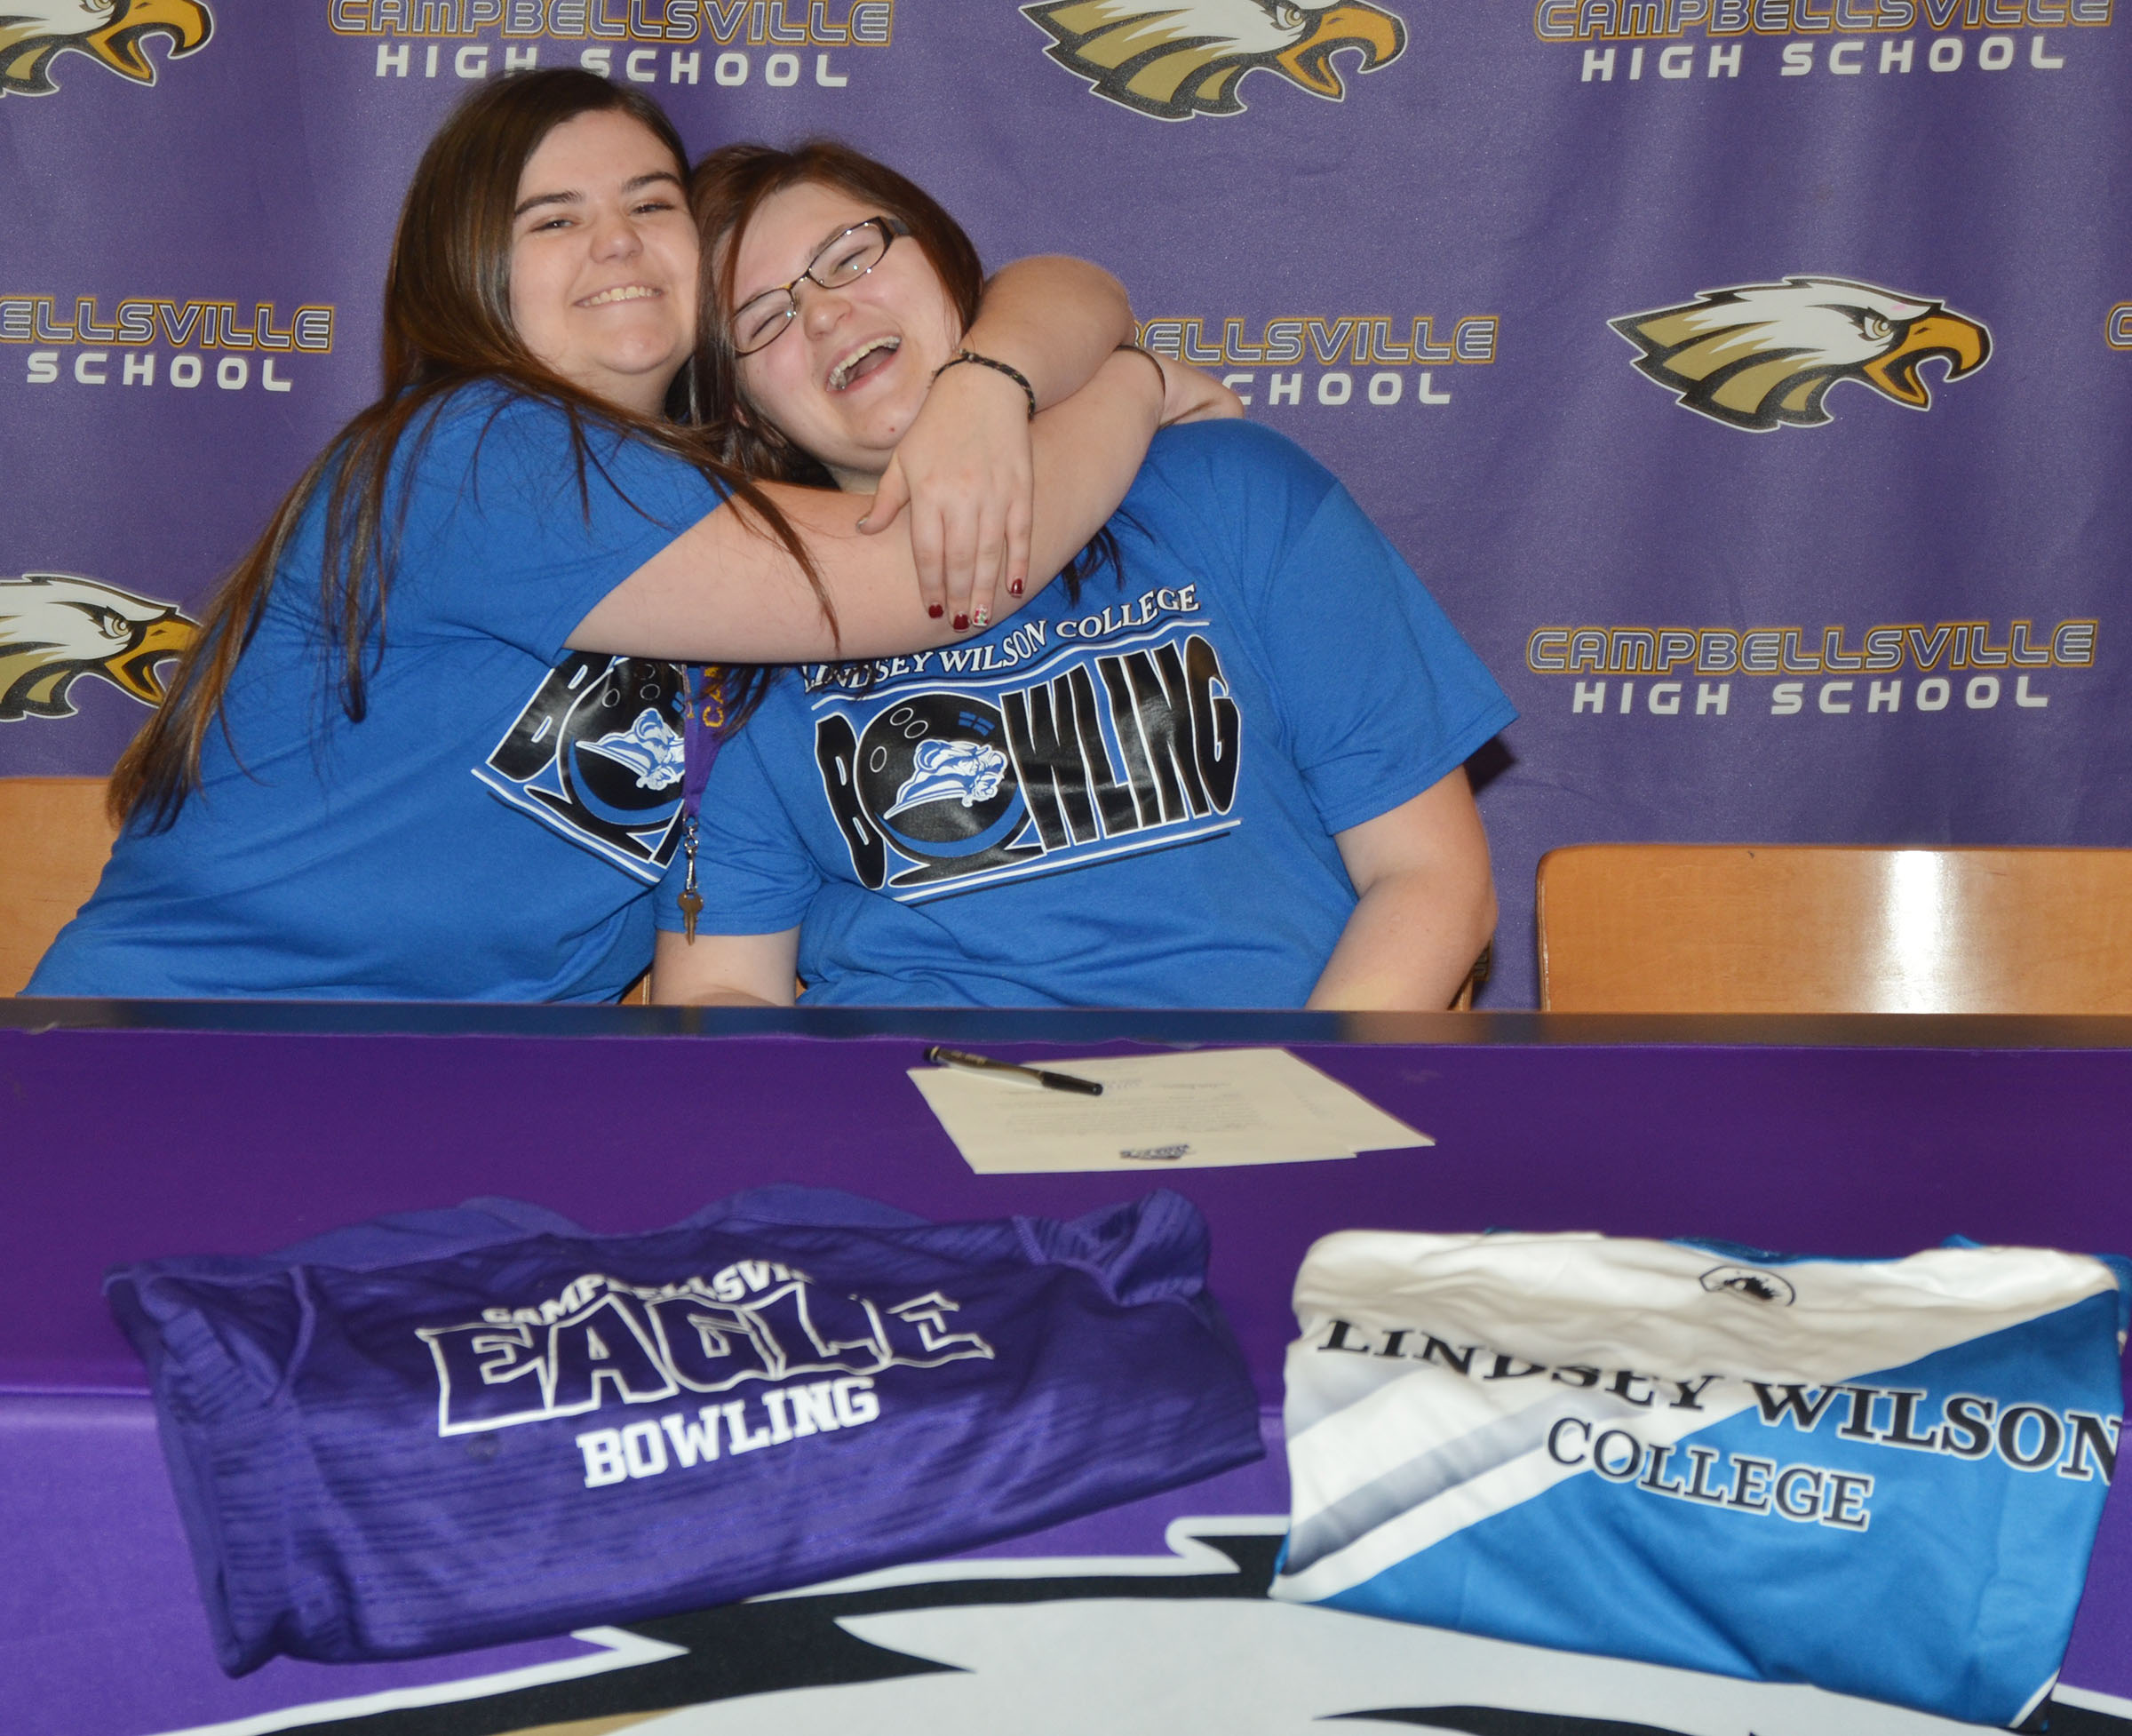 Campbellsville High School senior Vera Brown will continue her academic and bowling career at Lindsey Wilson College in the fall. She officially signed her letter of intent in a special ceremony on Wednesday, Feb. 1. Above, she receives a hug from her sister, CHS junior Vivian Brown.